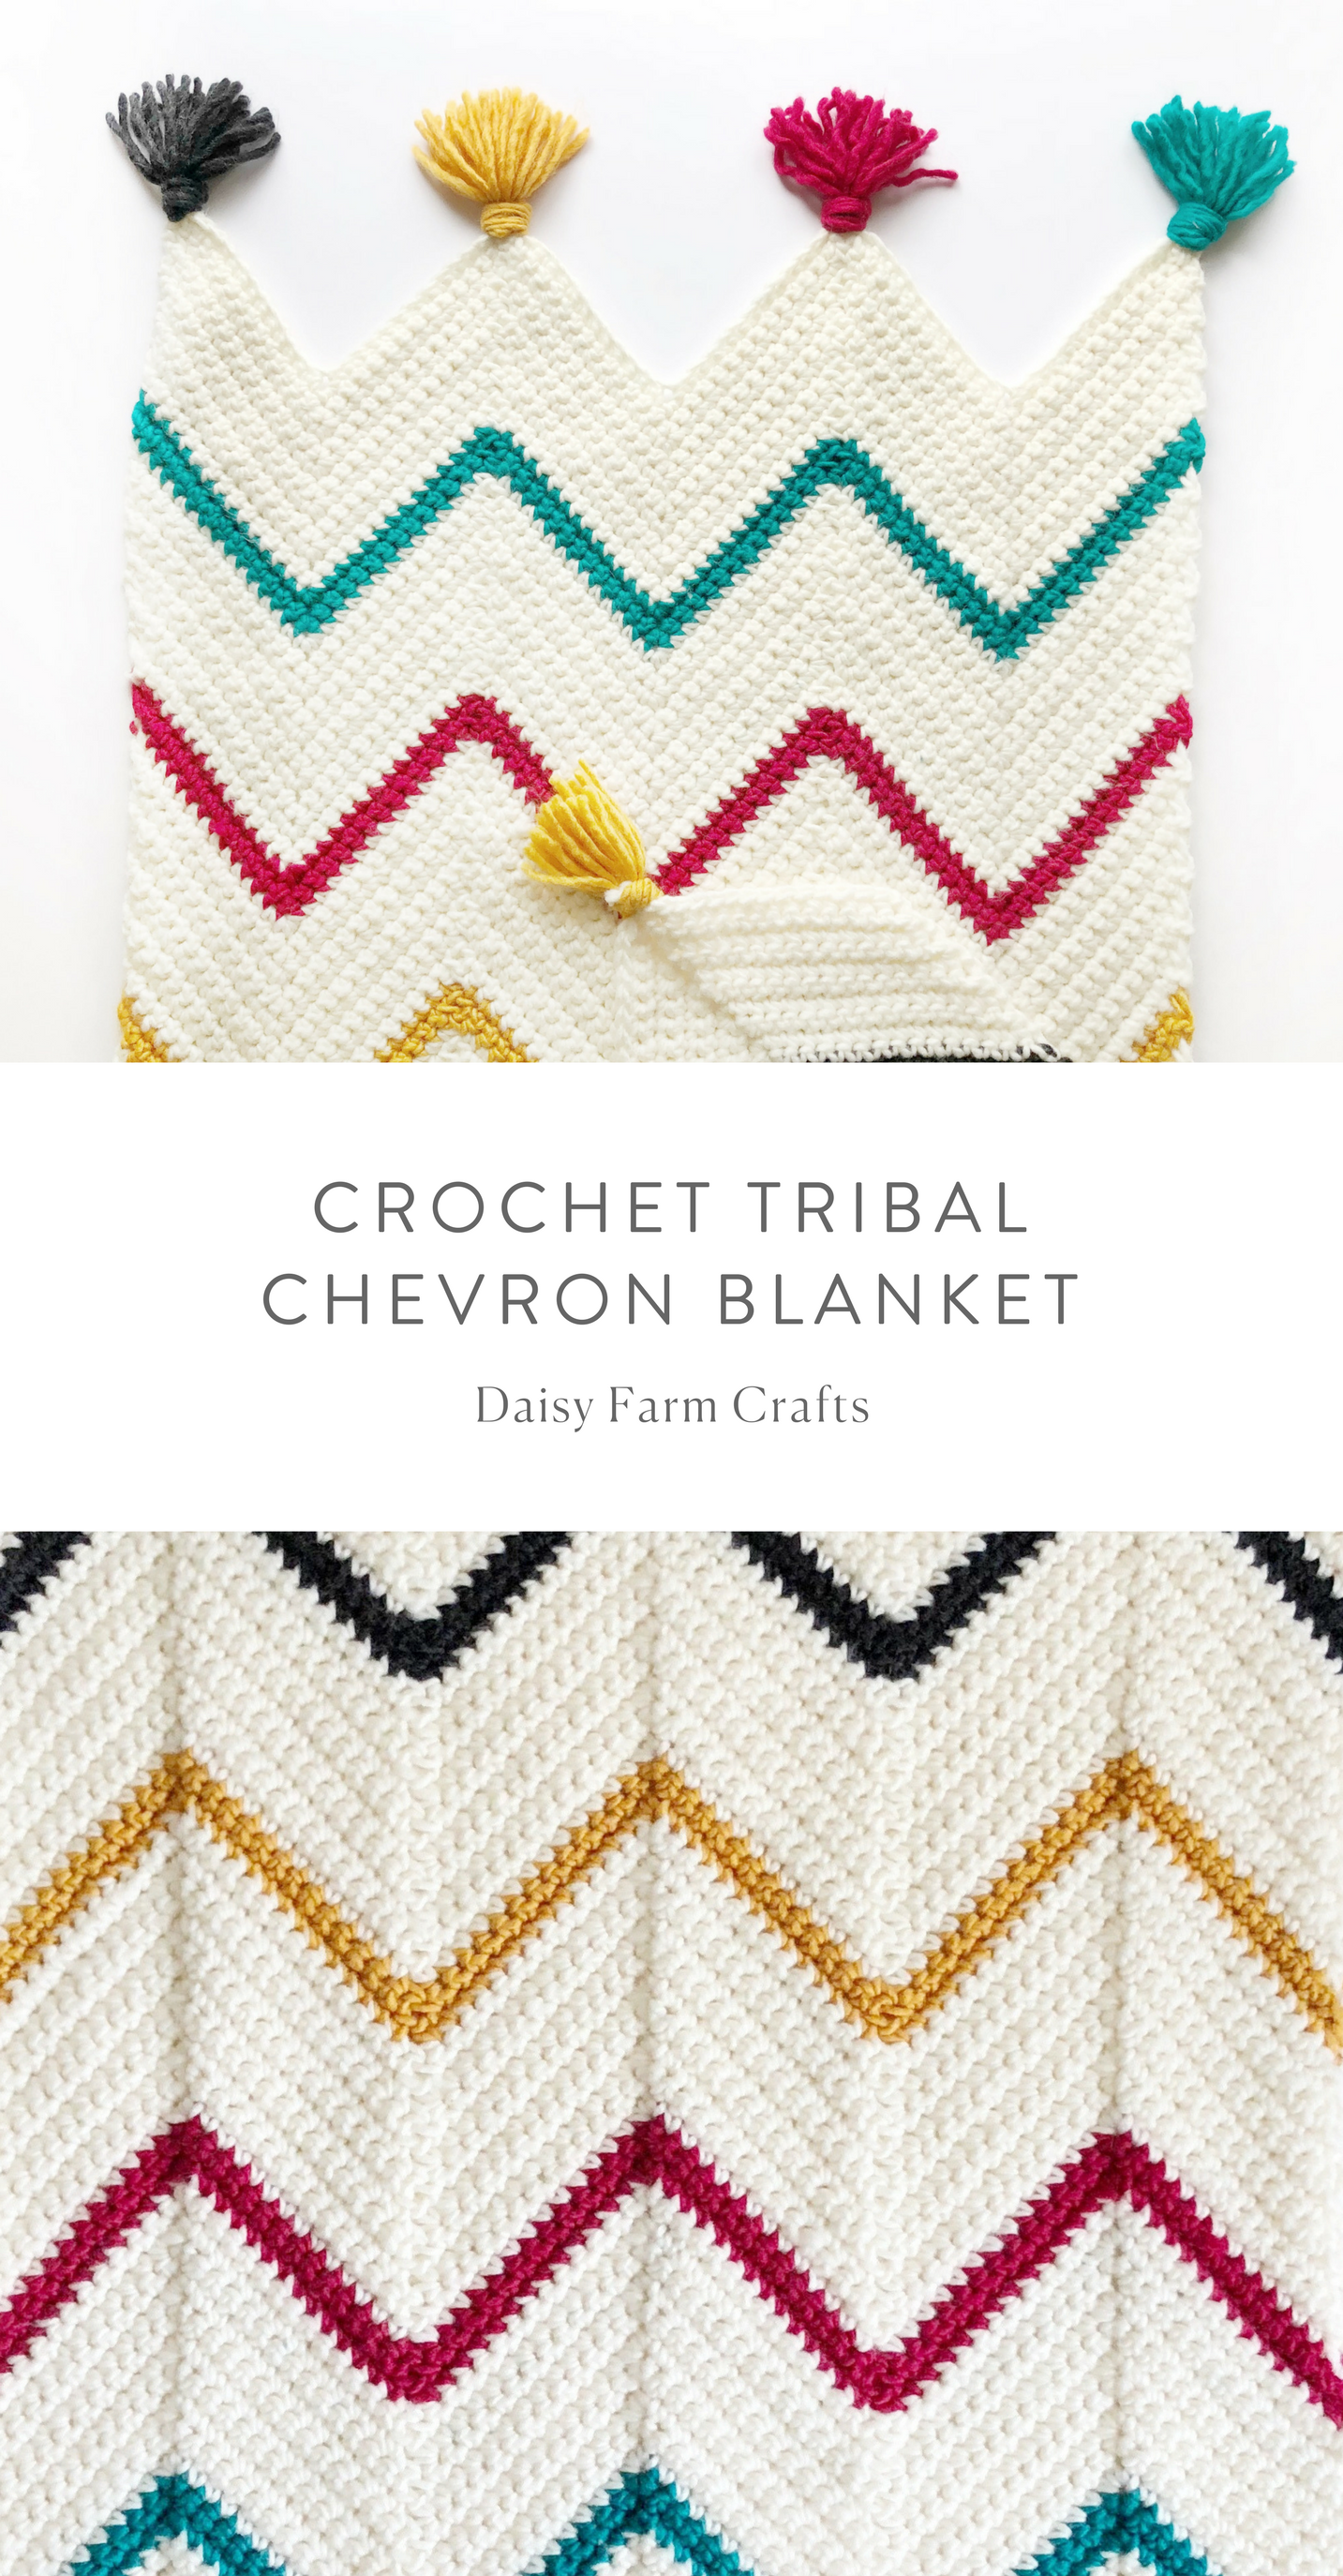 Free Pattern - Crochet Tribal Chevron Blanket | Crochet blankets ...